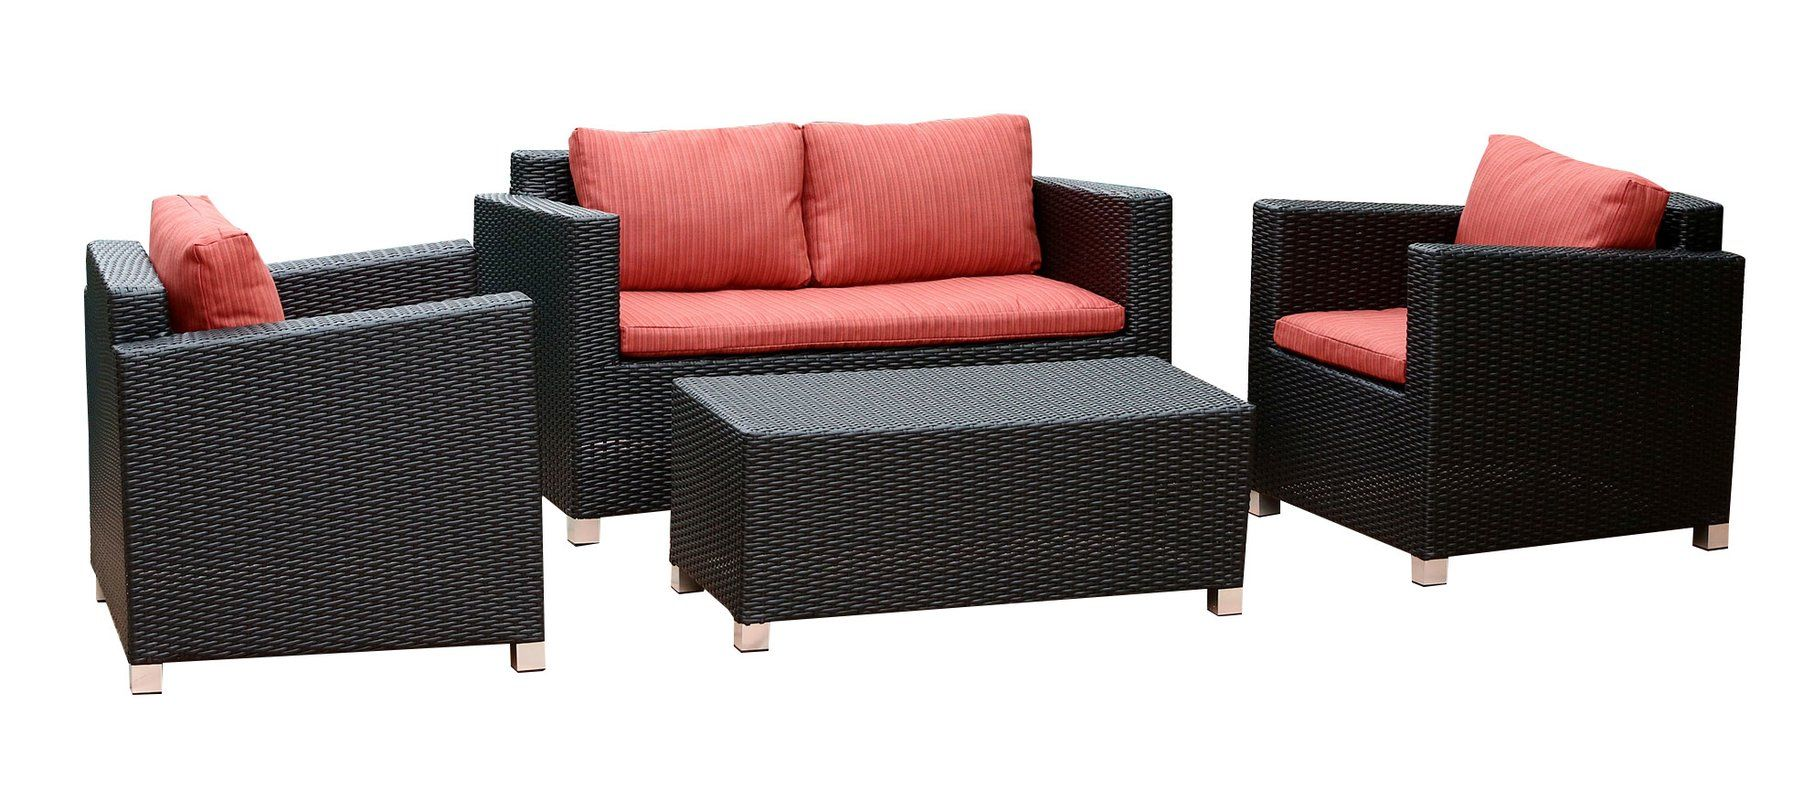 Inredning teak utemöbler : You'll love the Weimar Outdoor Wicker Rattan 4 Piece Lounge ...